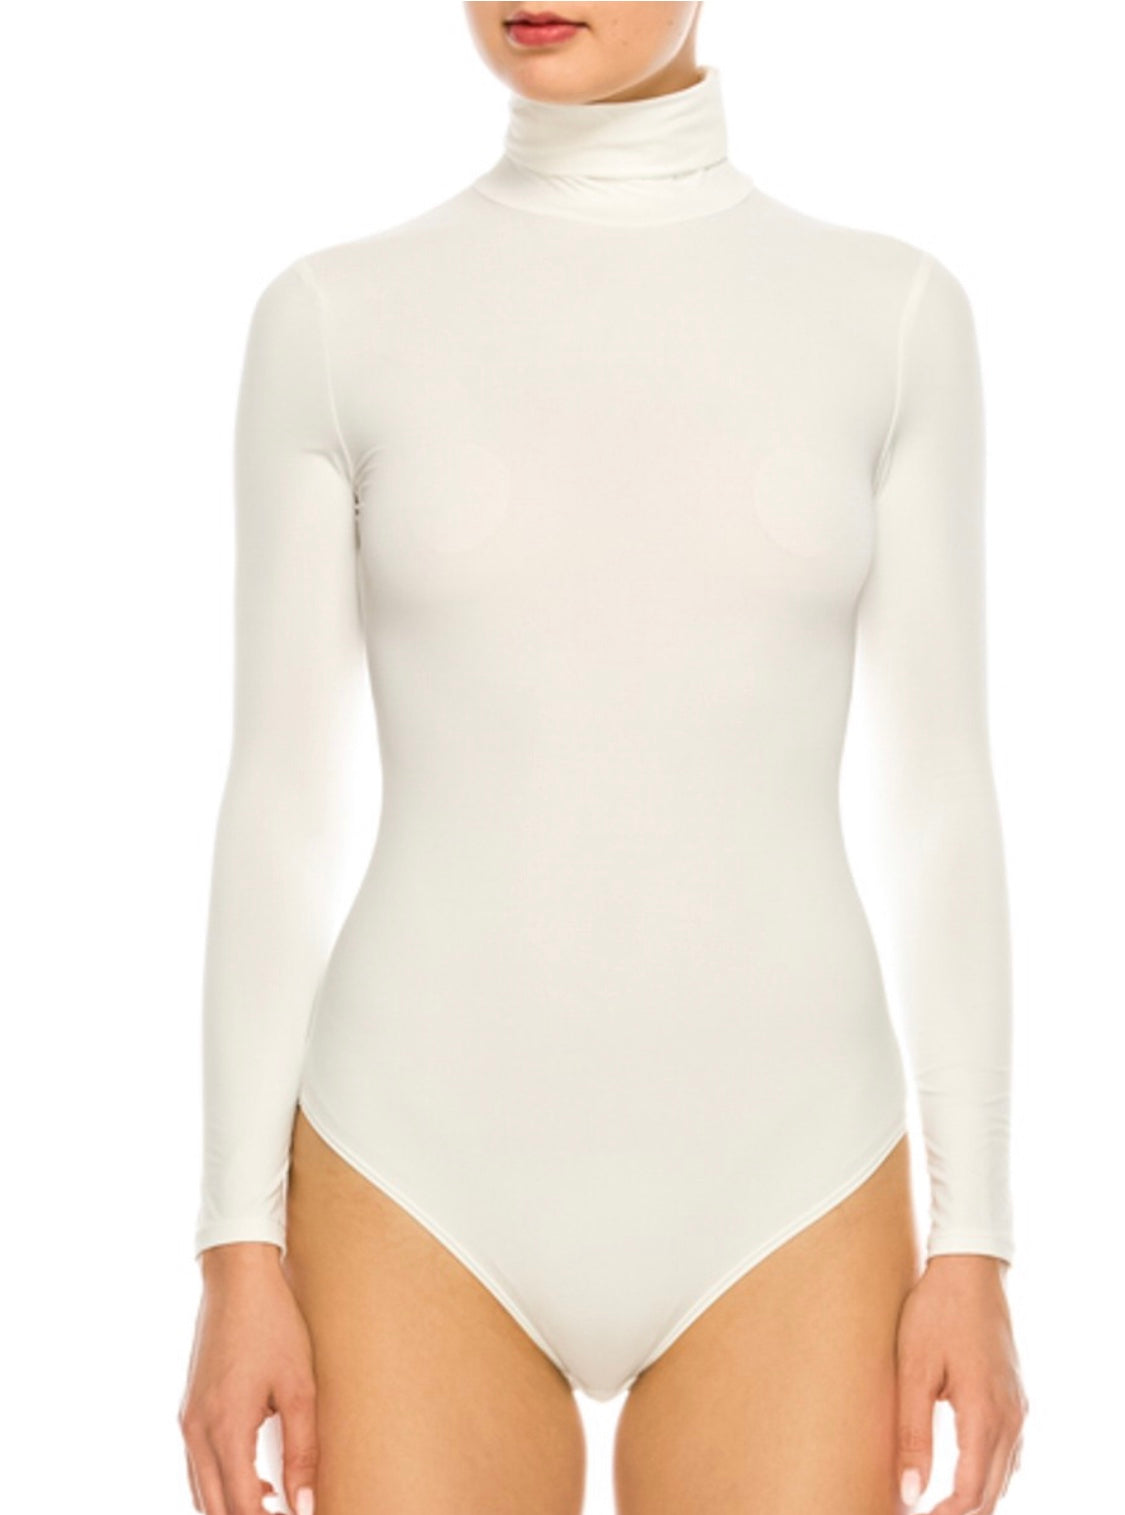 0ef437b5 Turtle Neck Bodysuit - White – New Luxe Collection